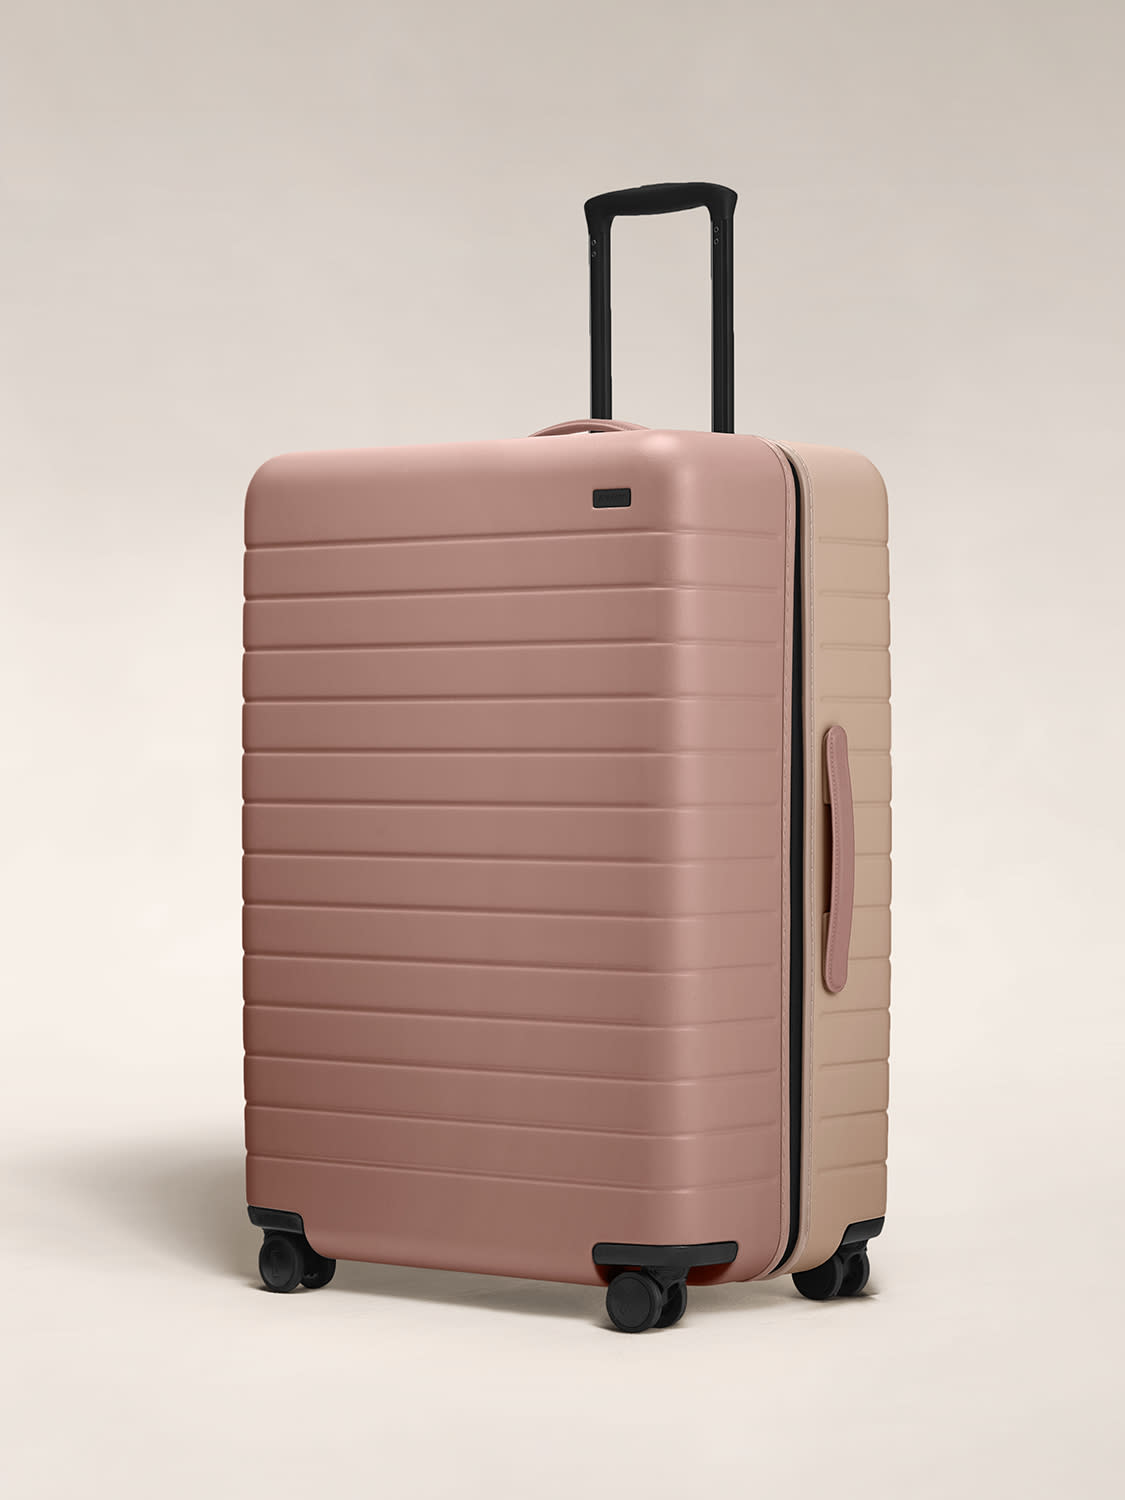 Angled view of the Large hardside suitcase in Dusty Rose/ Taupe